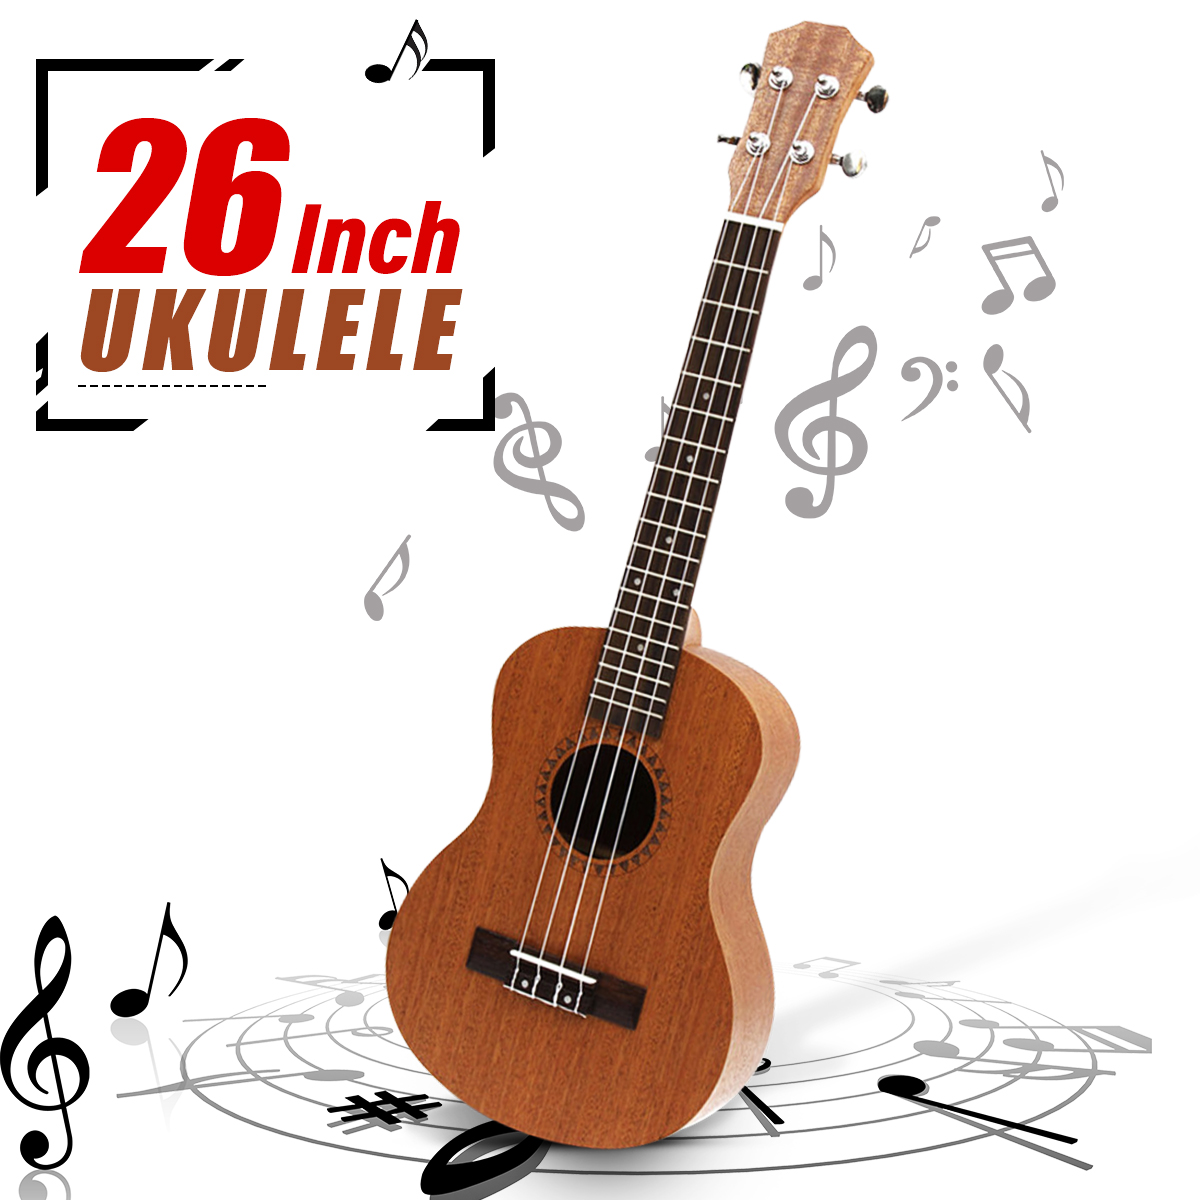 Professional 26 Inch Ukulele Uke Hawaii Acoustic Guitar Sapele 18 Fret Wood Ukulele Musical Instruments For Great GiftProfessional 26 Inch Ukulele Uke Hawaii Acoustic Guitar Sapele 18 Fret Wood Ukulele Musical Instruments For Great Gift